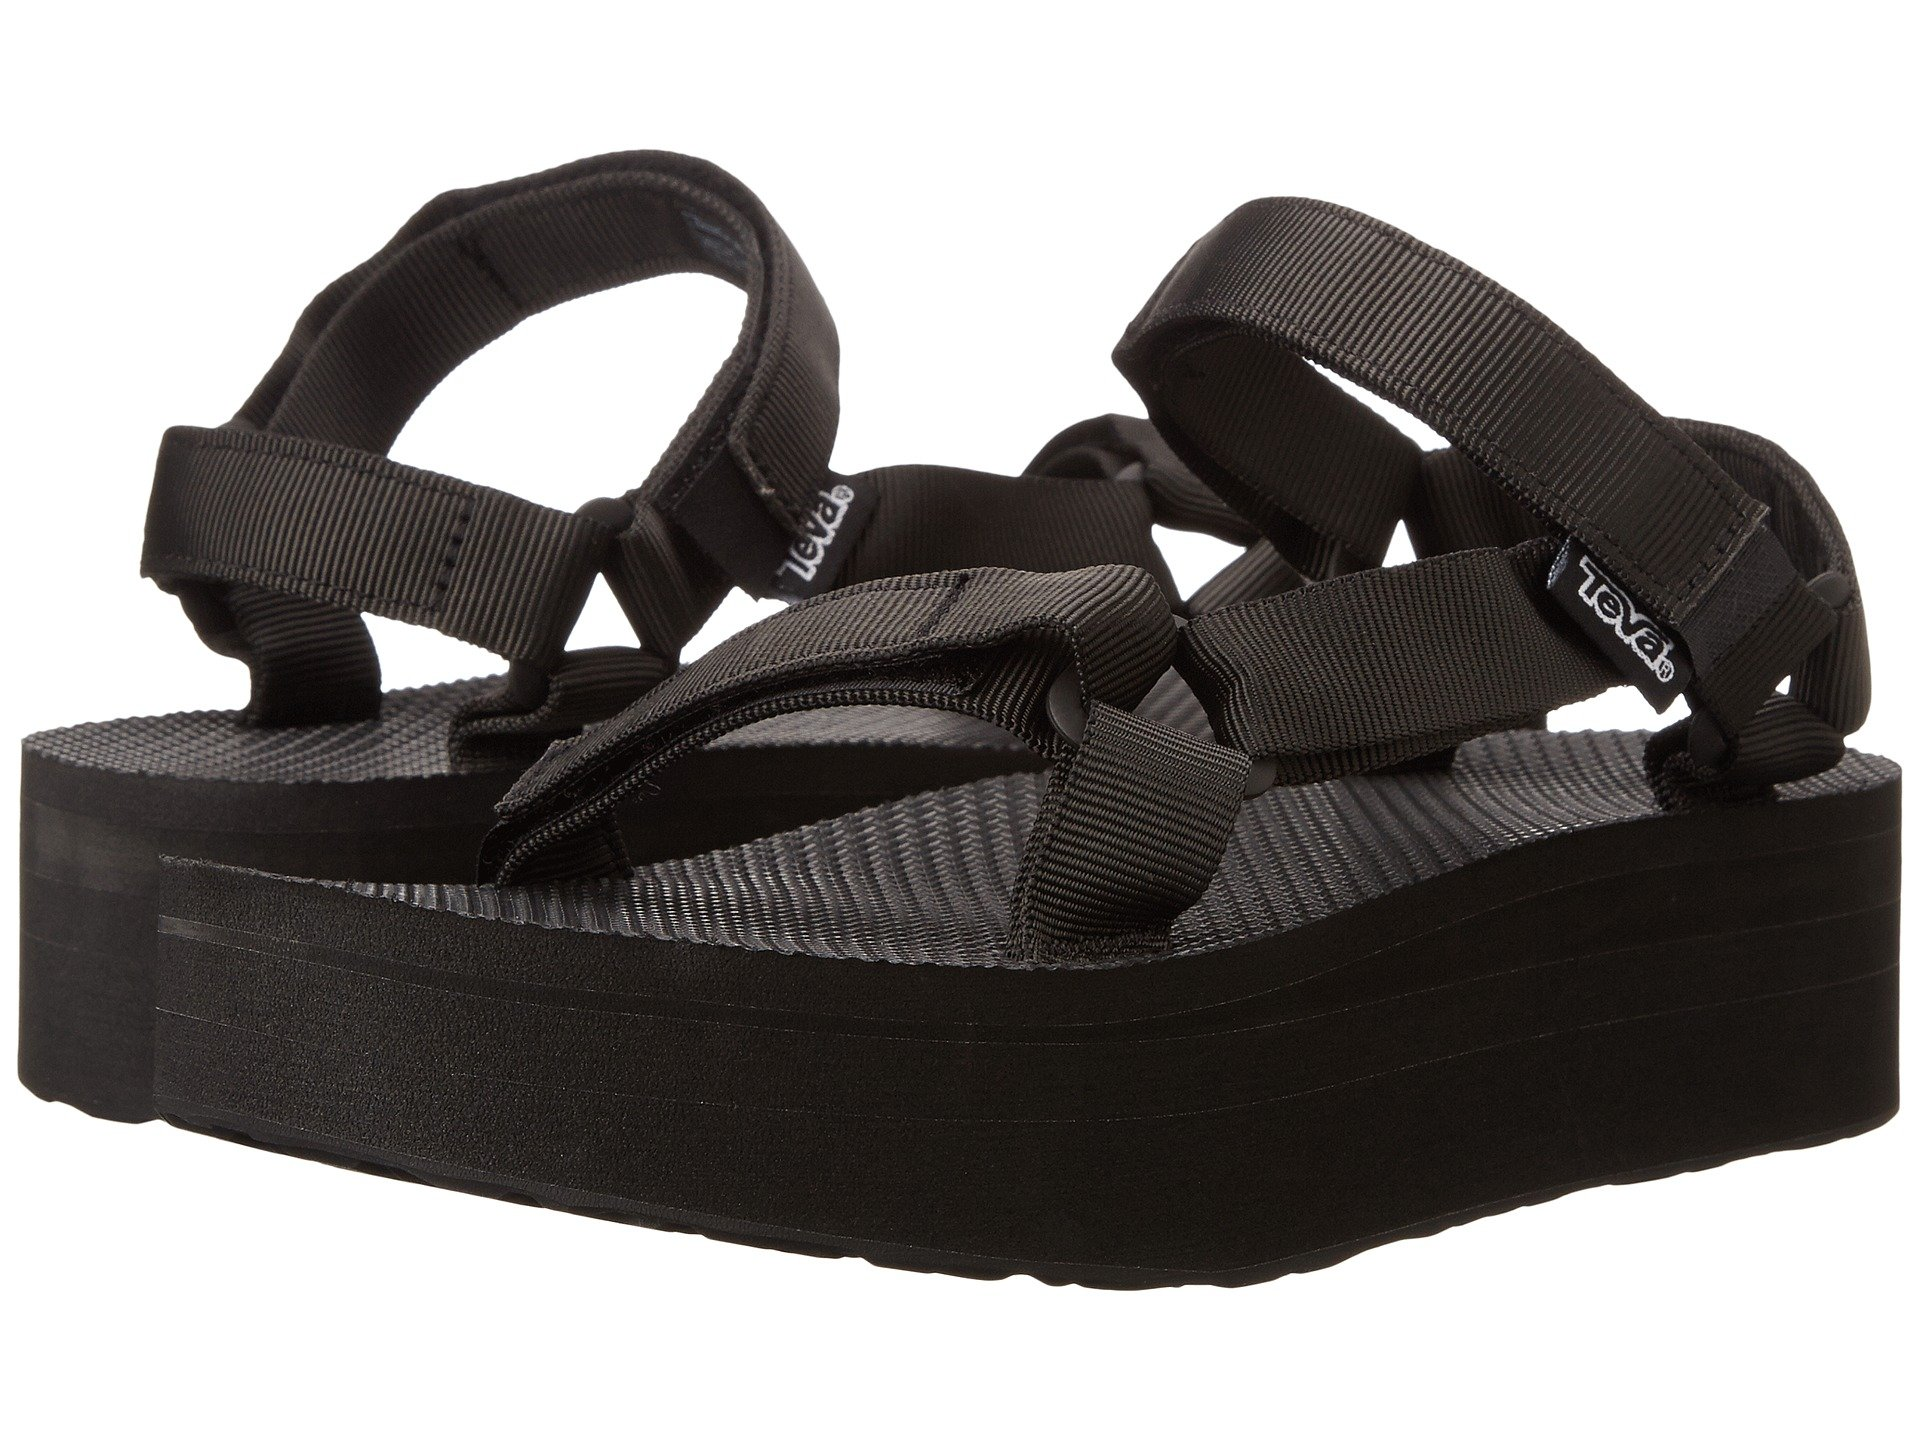 3794de7ba136df Women s Teva Sandals + FREE SHIPPING